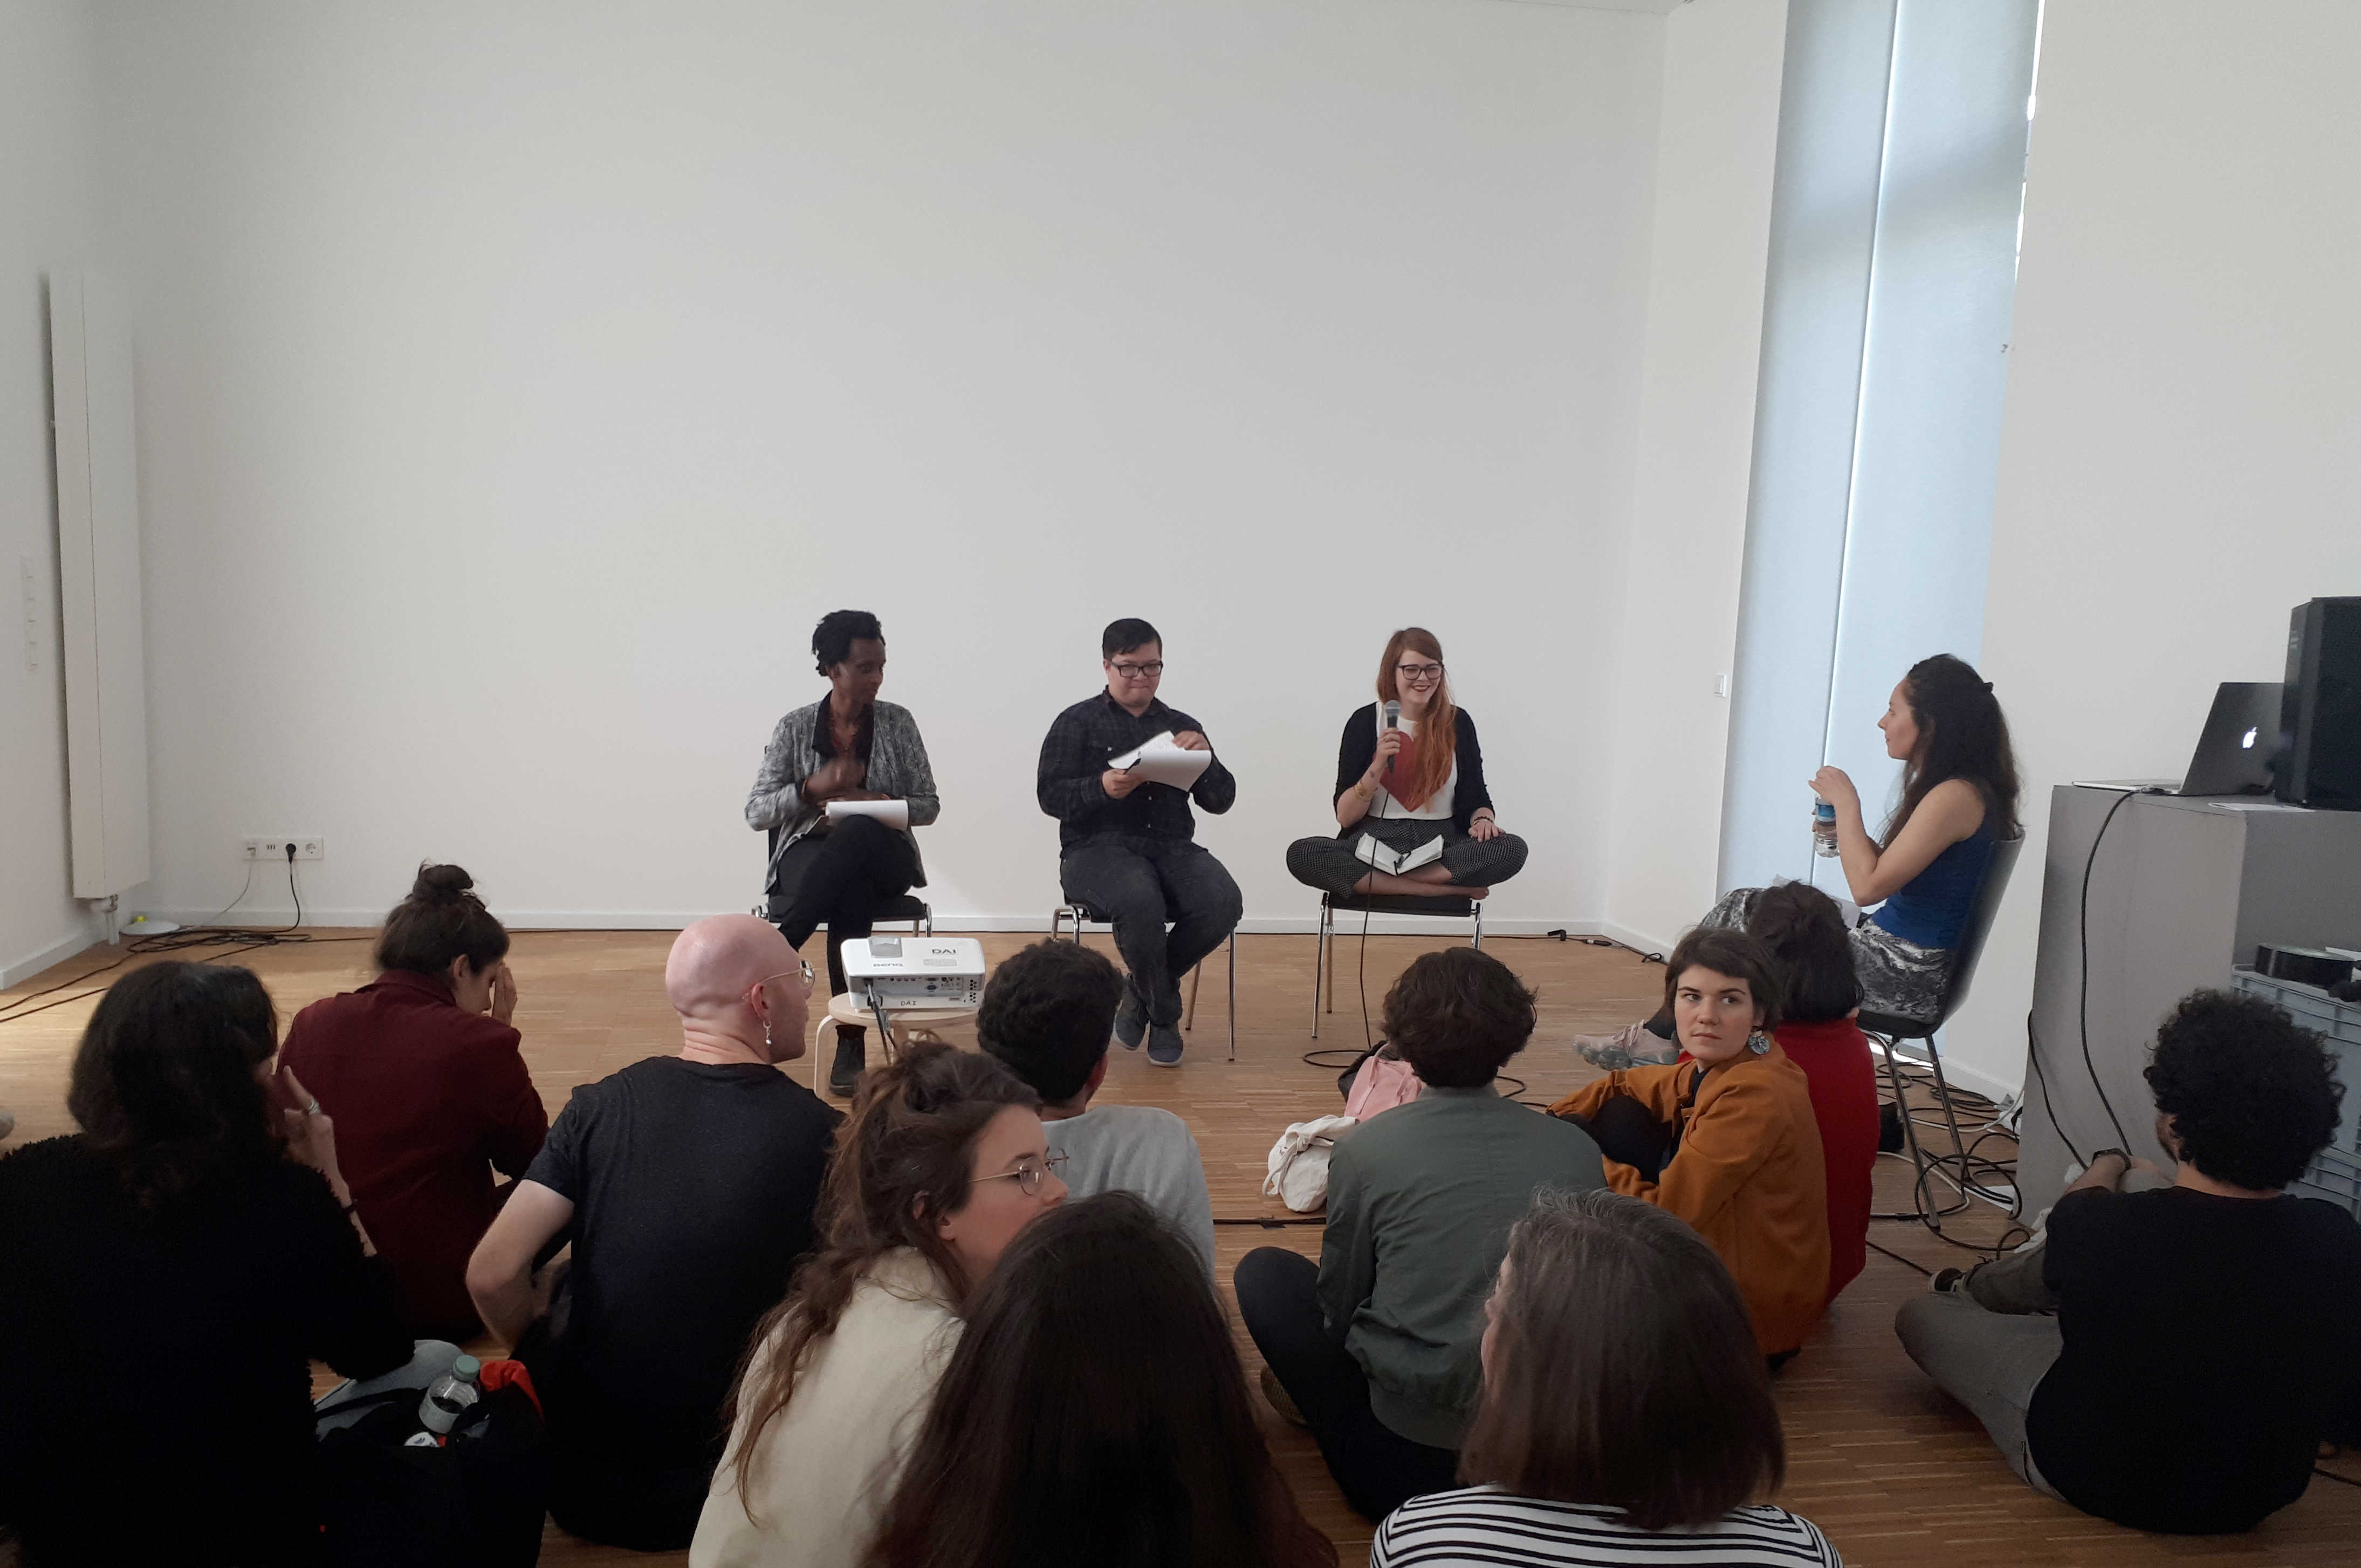 Sebastian de Line, Arlette-Louise Ndakoze & Bethany Crawford responding at Lea Ruegg's Final Kitchen presentation, Silent Green, Berlin